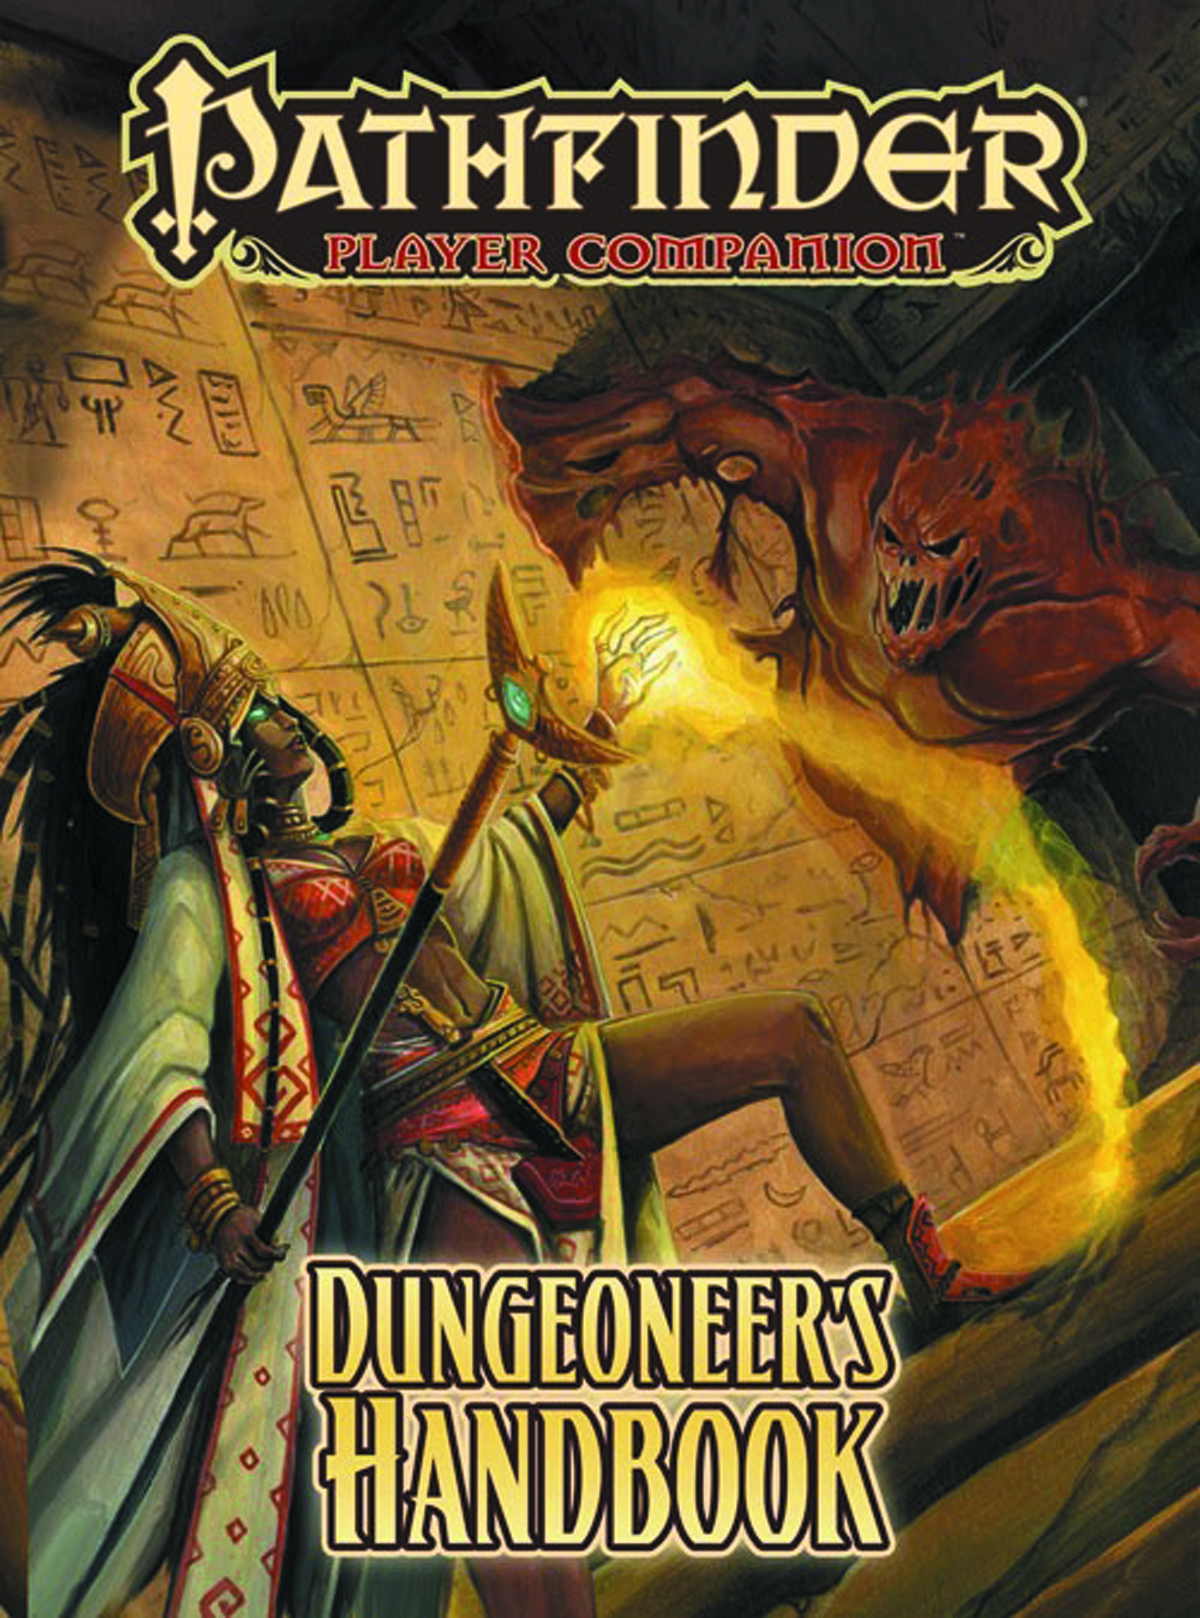 PATHFINDER PLAYER COMPANION DUNGEONEERS HANDBOOK